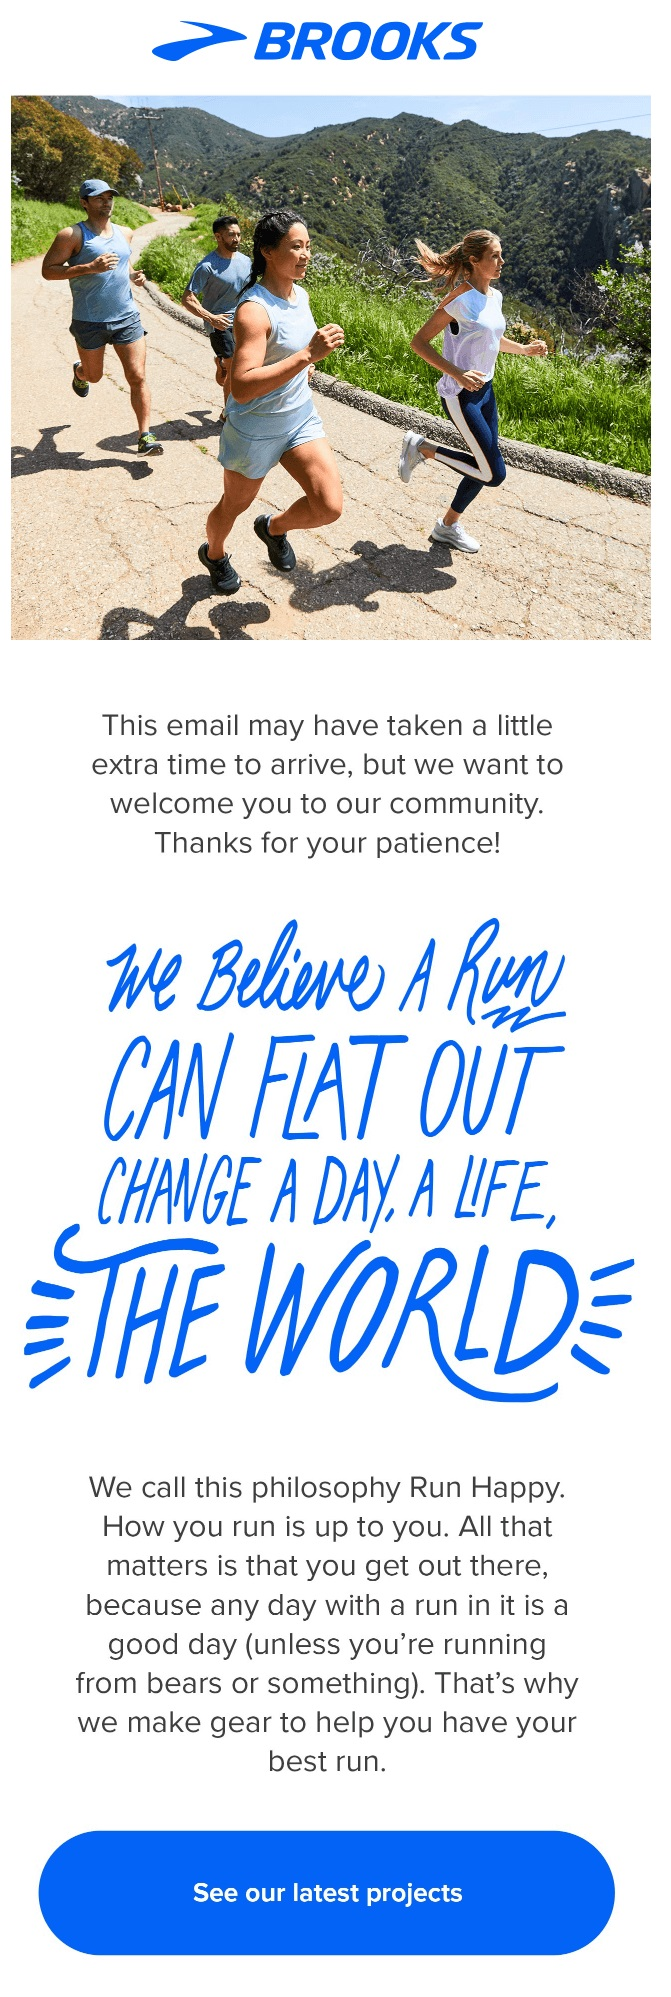 Good storytelling is always a part of good email marketing ideas